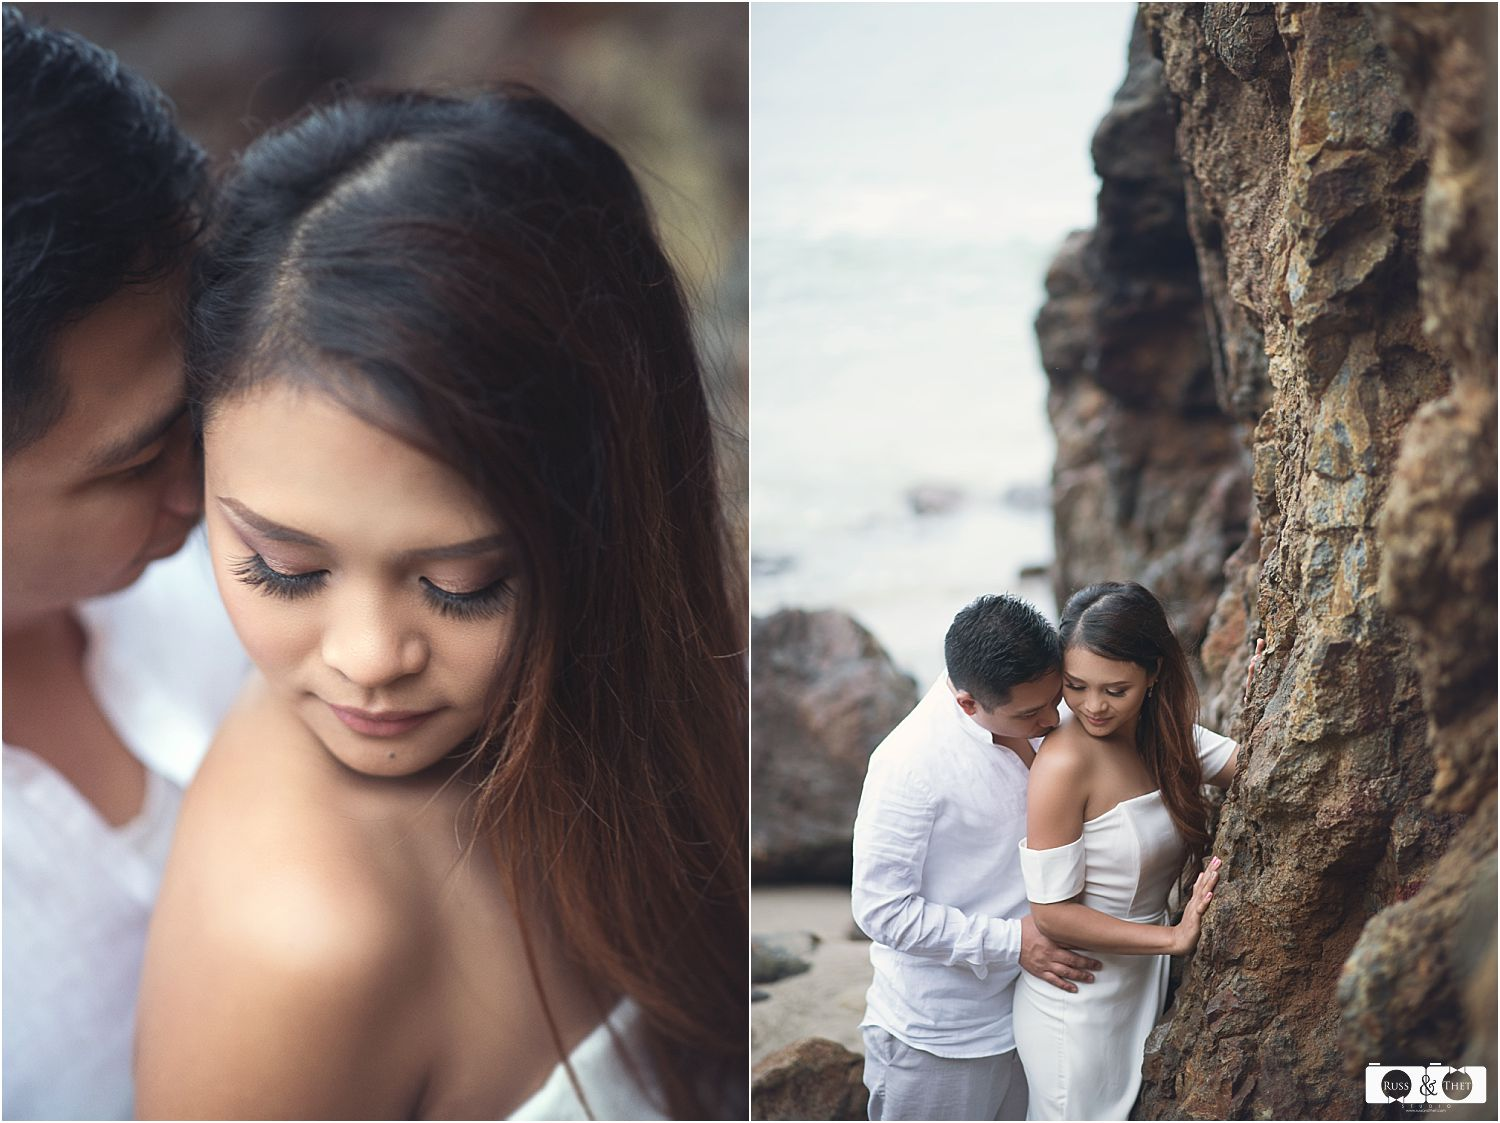 point-dume-beach-engagement-photographer (9).jpg